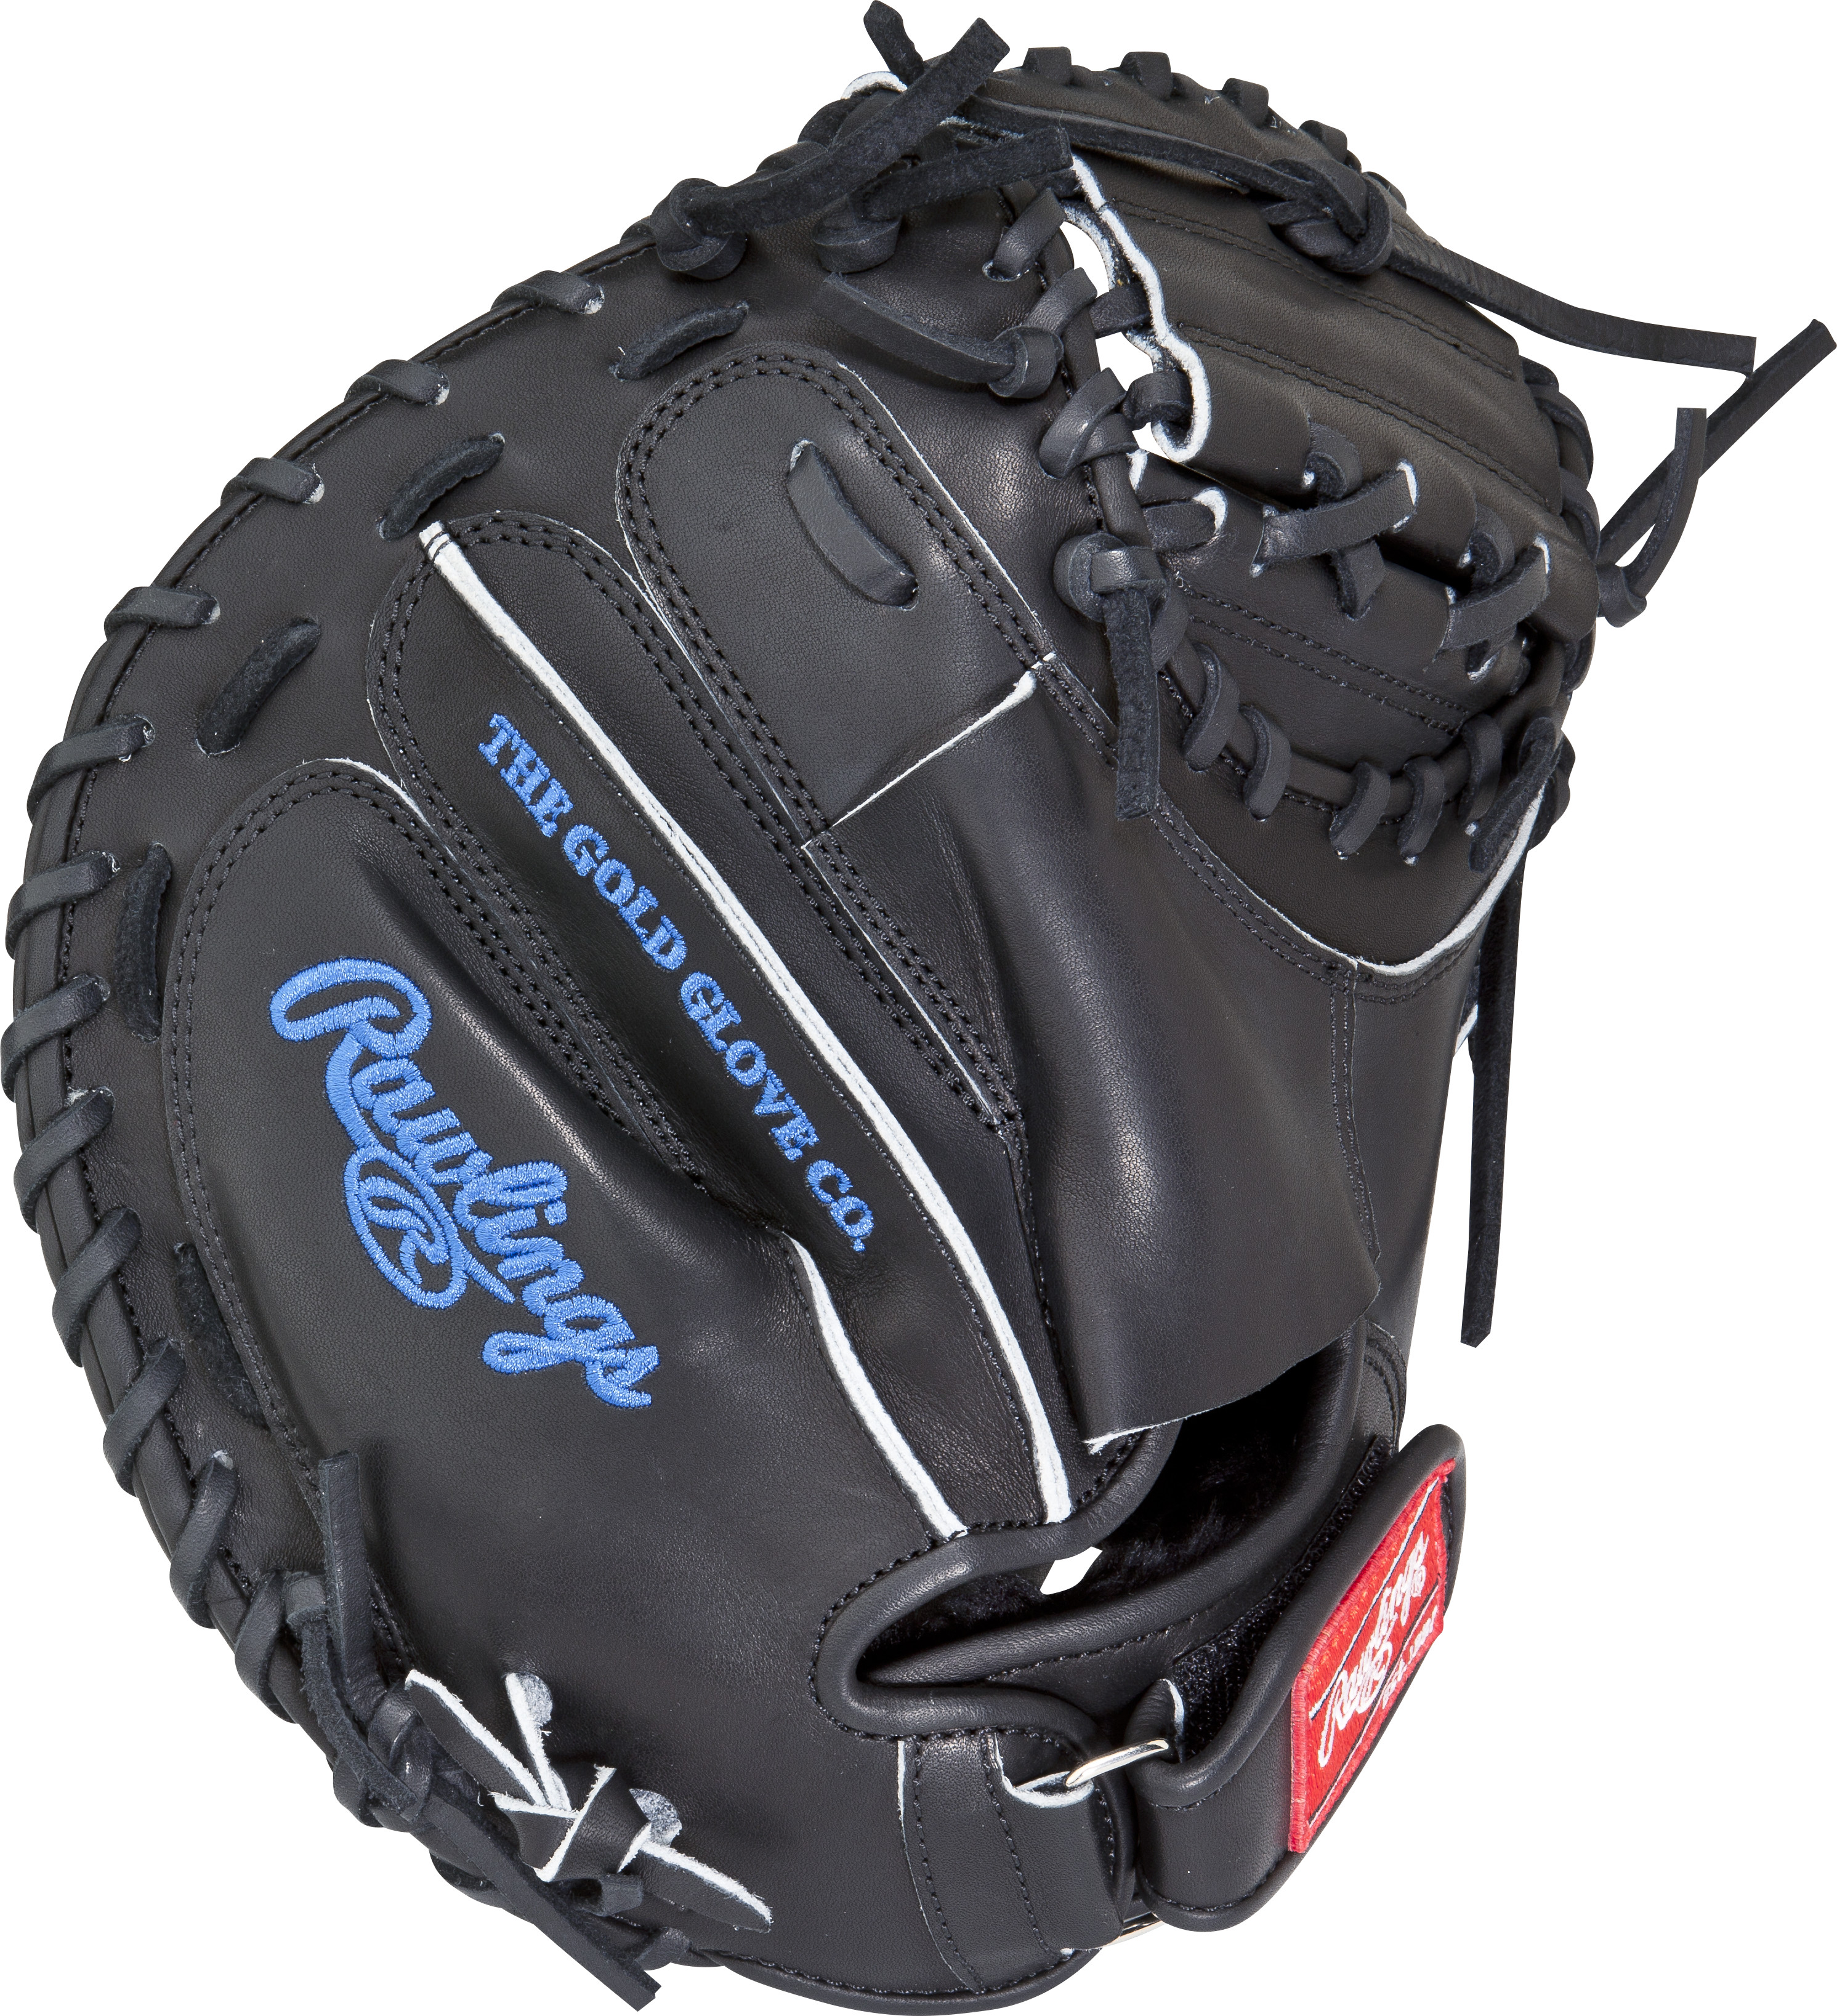 http://www.bestbatdeals.com/images/gloves/rawlings/PROSP13B_back.jpg